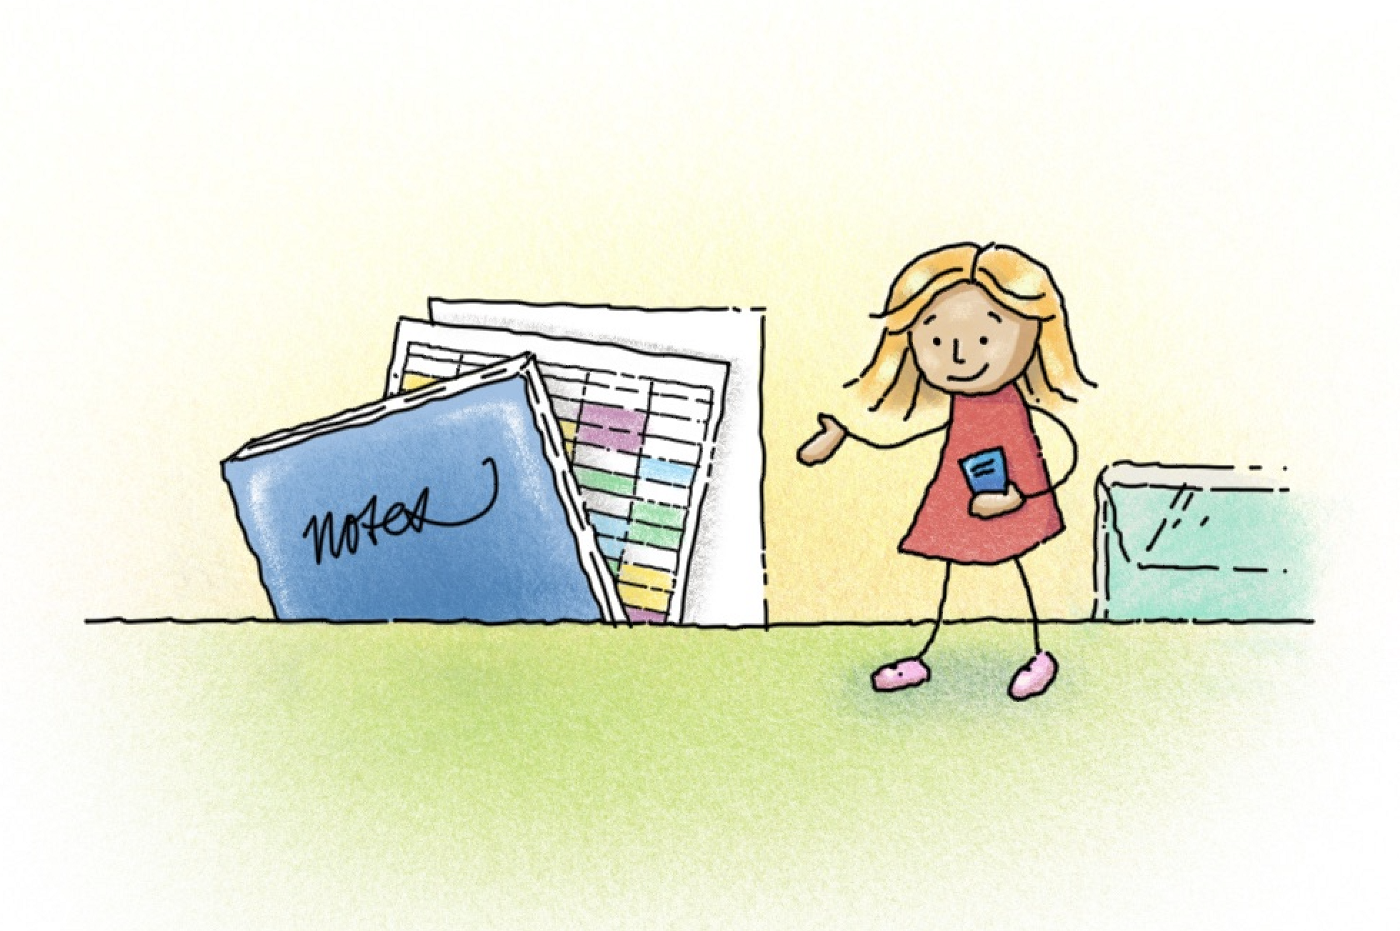 Cartoon girl holding a notebook, surrounded by giant notebooks and planning papers